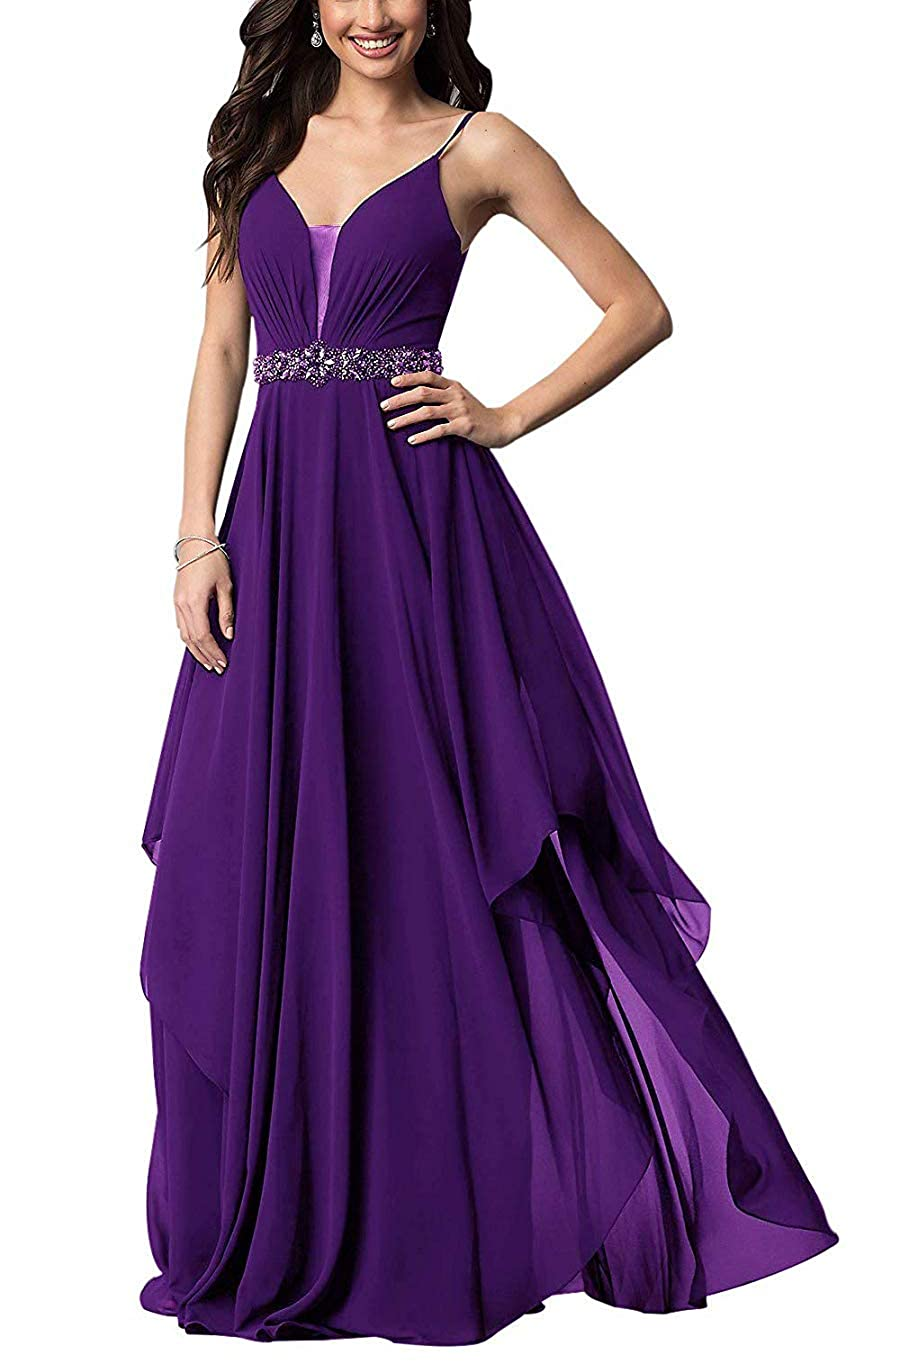 Purple Stylefun Spaghetii Strap Bridesmaid Dress for Women Ruched Skirt Evening Formal Gowns with Beaded Belt KN025